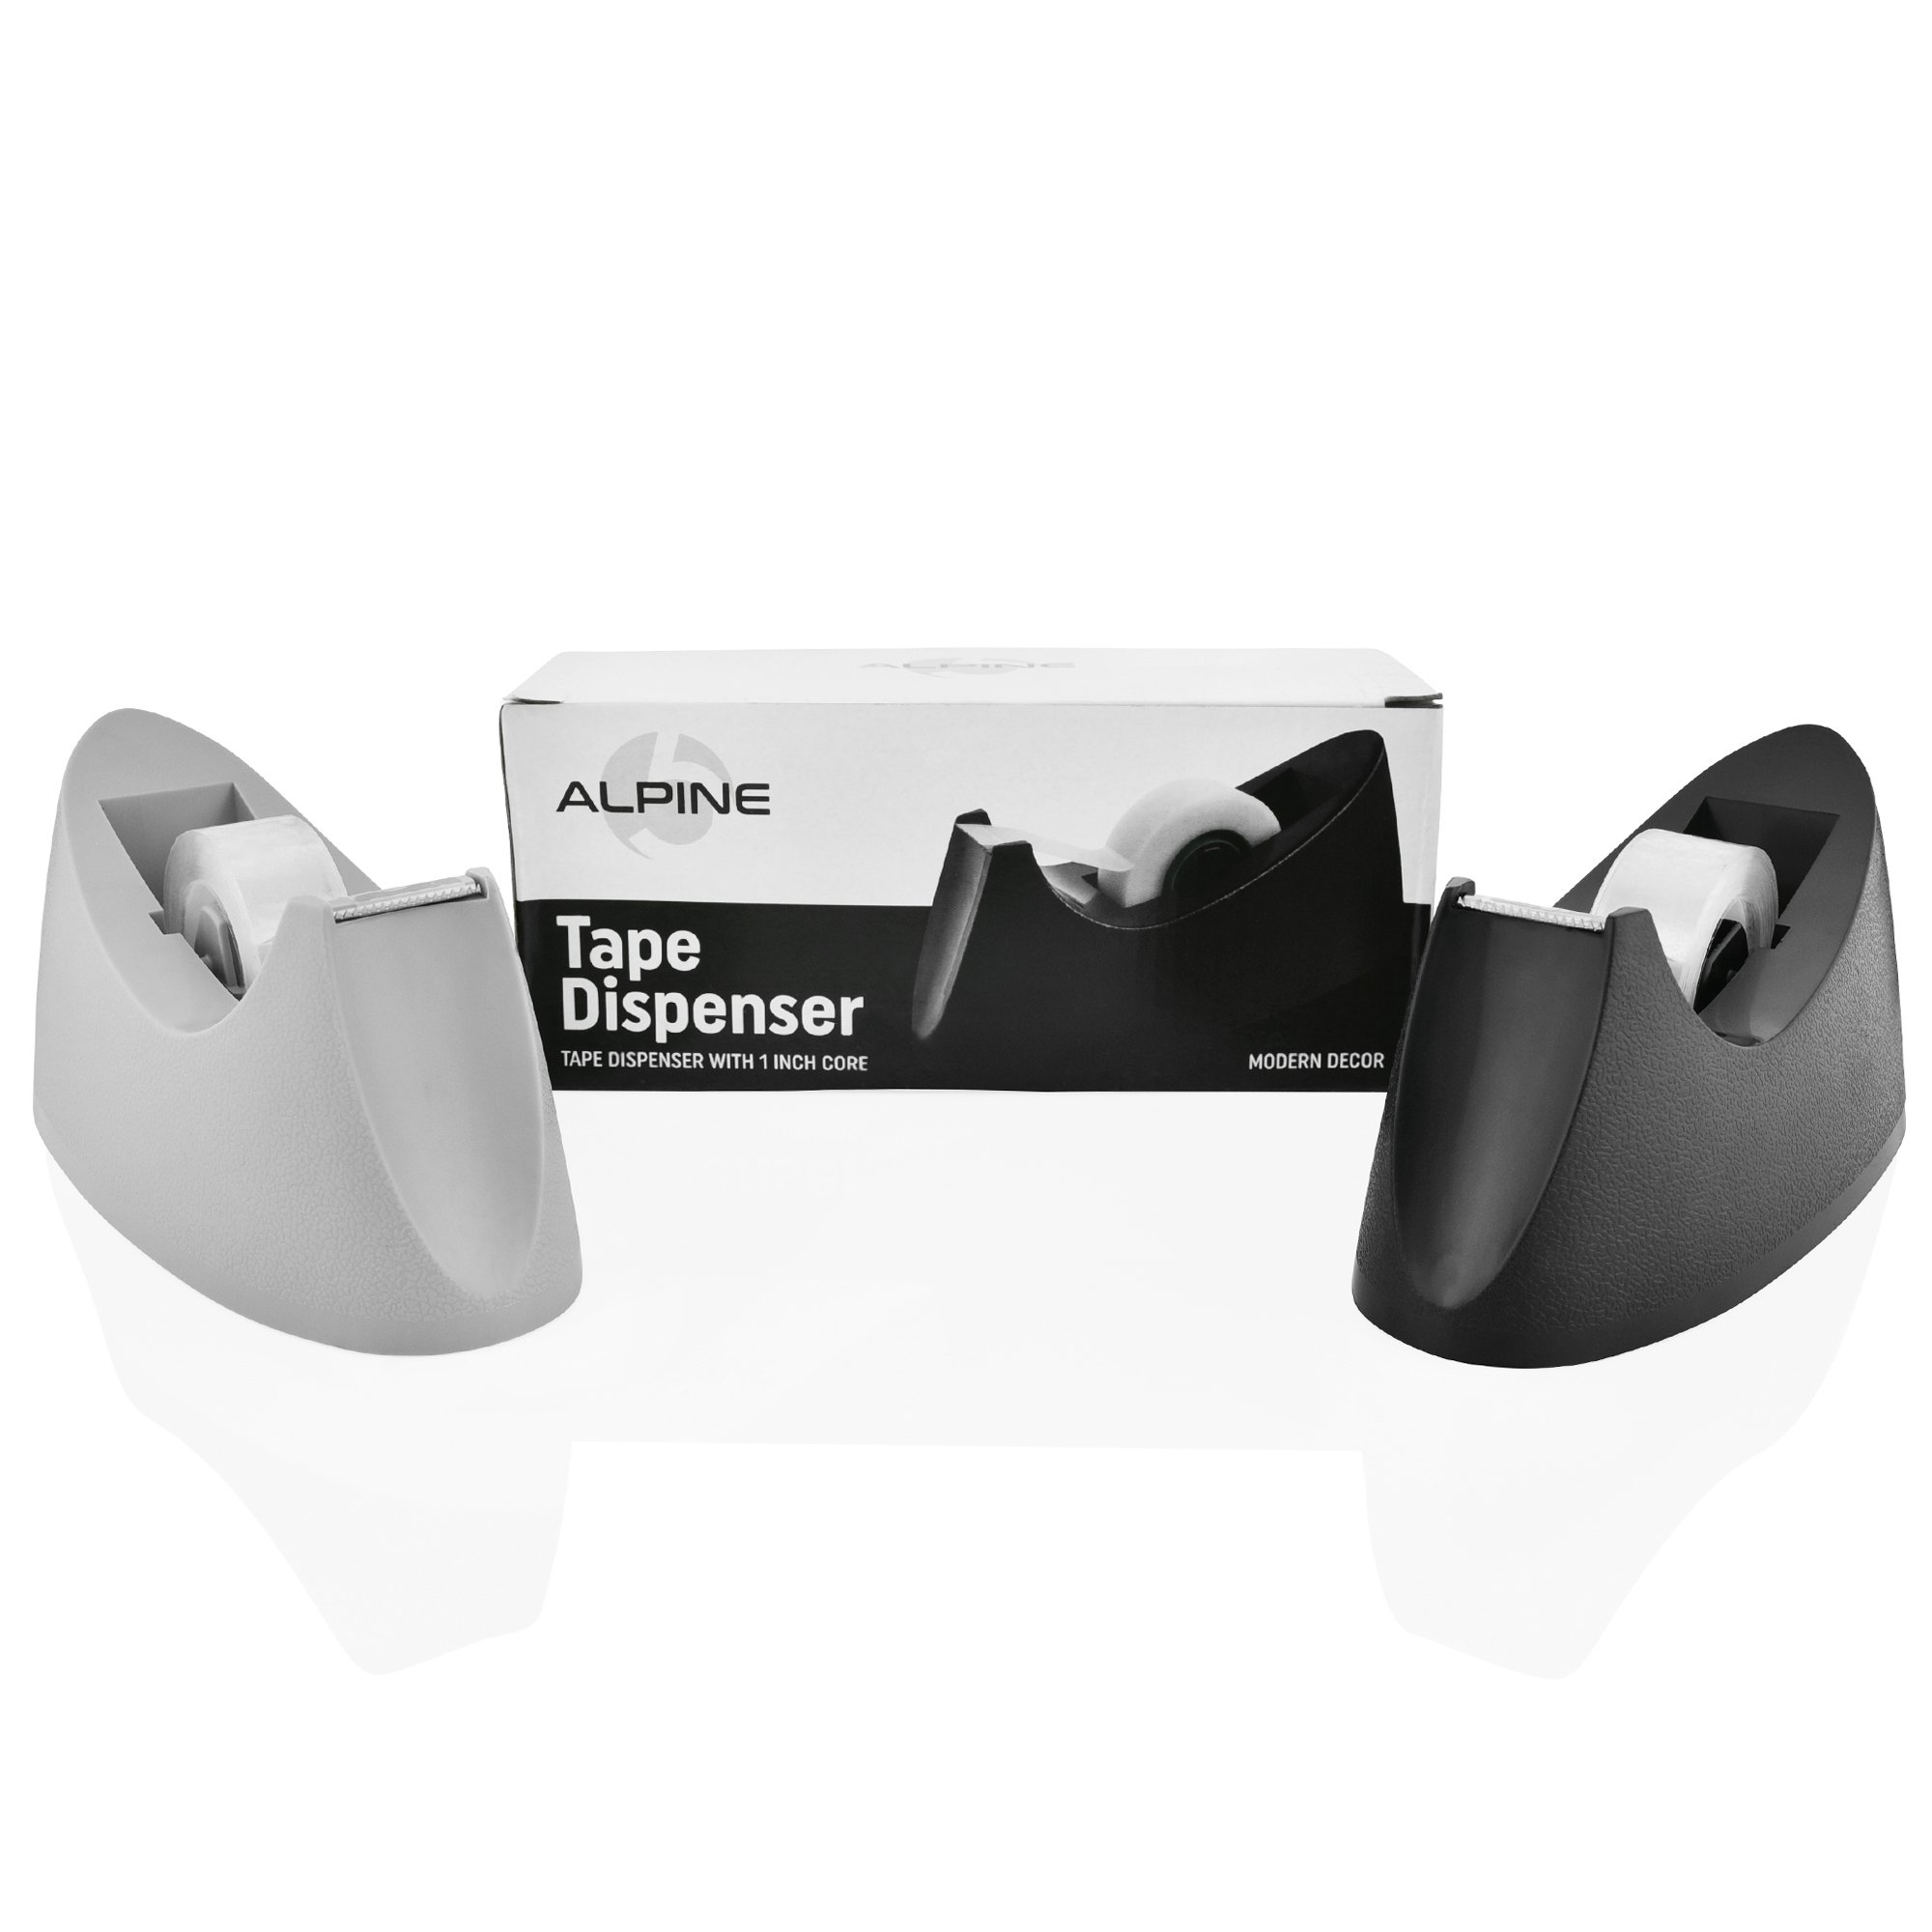 Desktop Tape Dispenser 2-Pack Classic Heavy Duty with 1 Inch Core. Tape Included. Takes Any 3/4 Inch Tape Including Scotch Invisible. Non-Skid Base, Rugged Durability, Sharper Long Lasting Blade